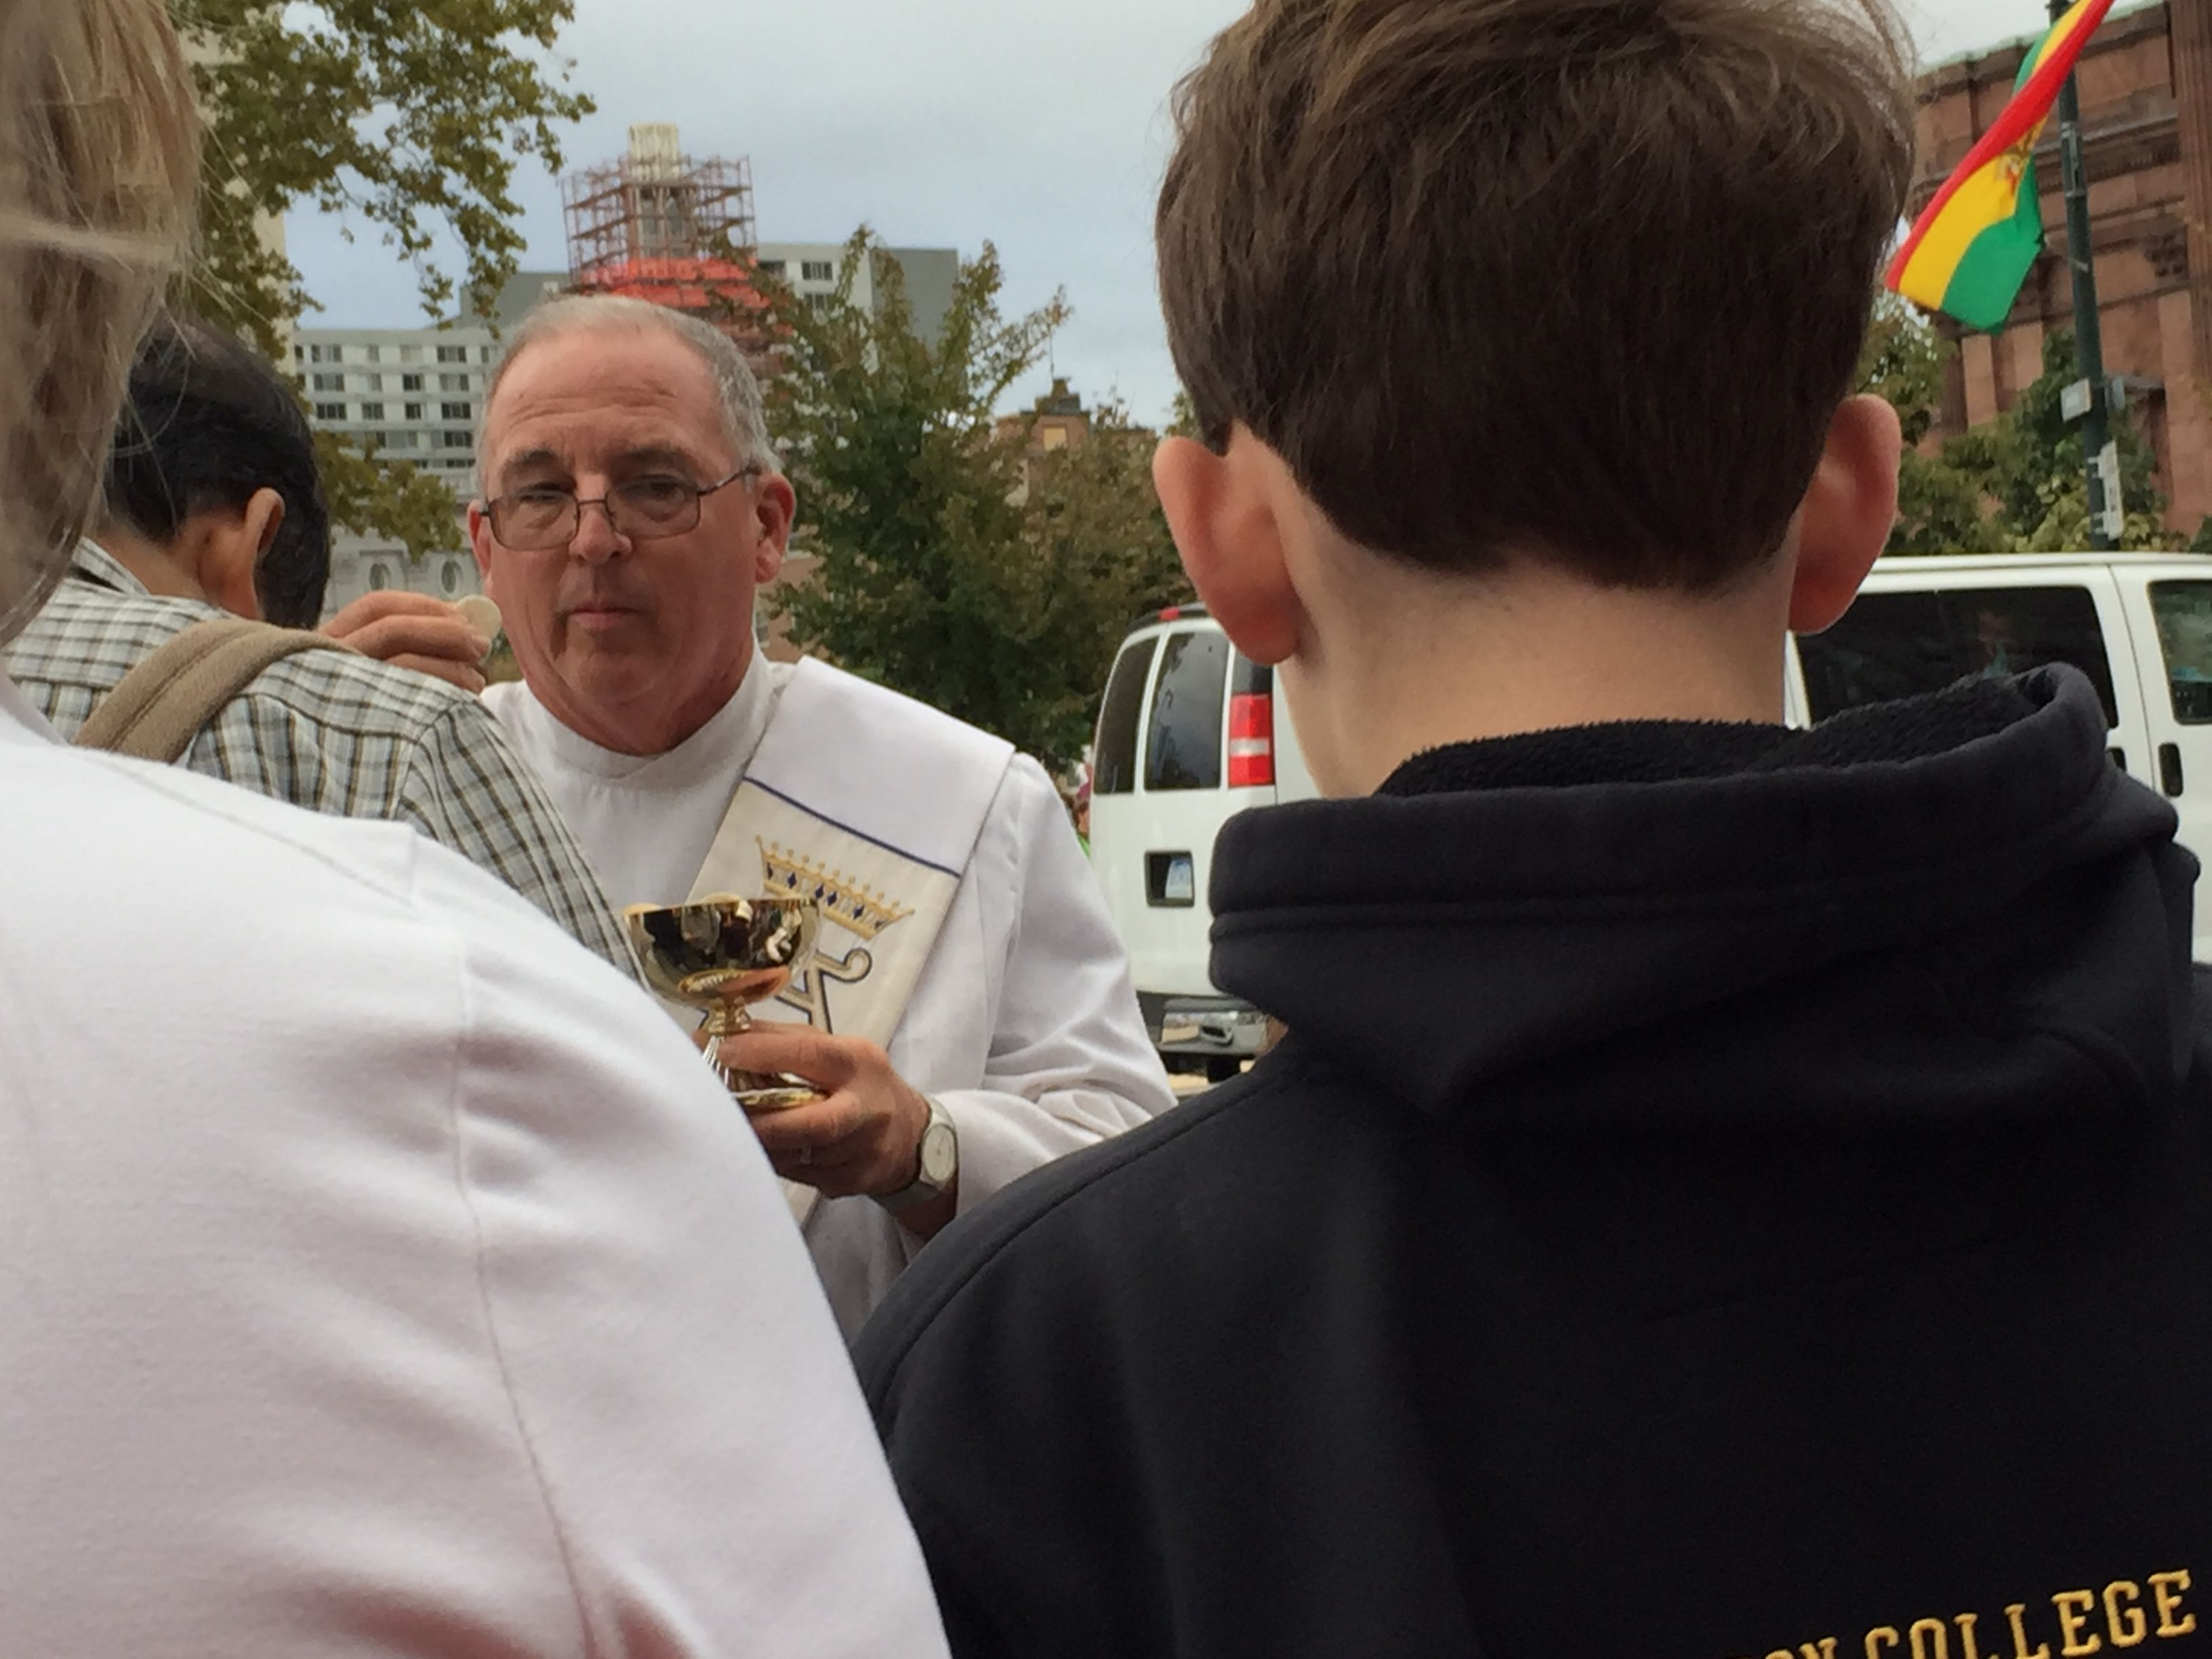 A priest hands out communion during the papal Mass in Philly.